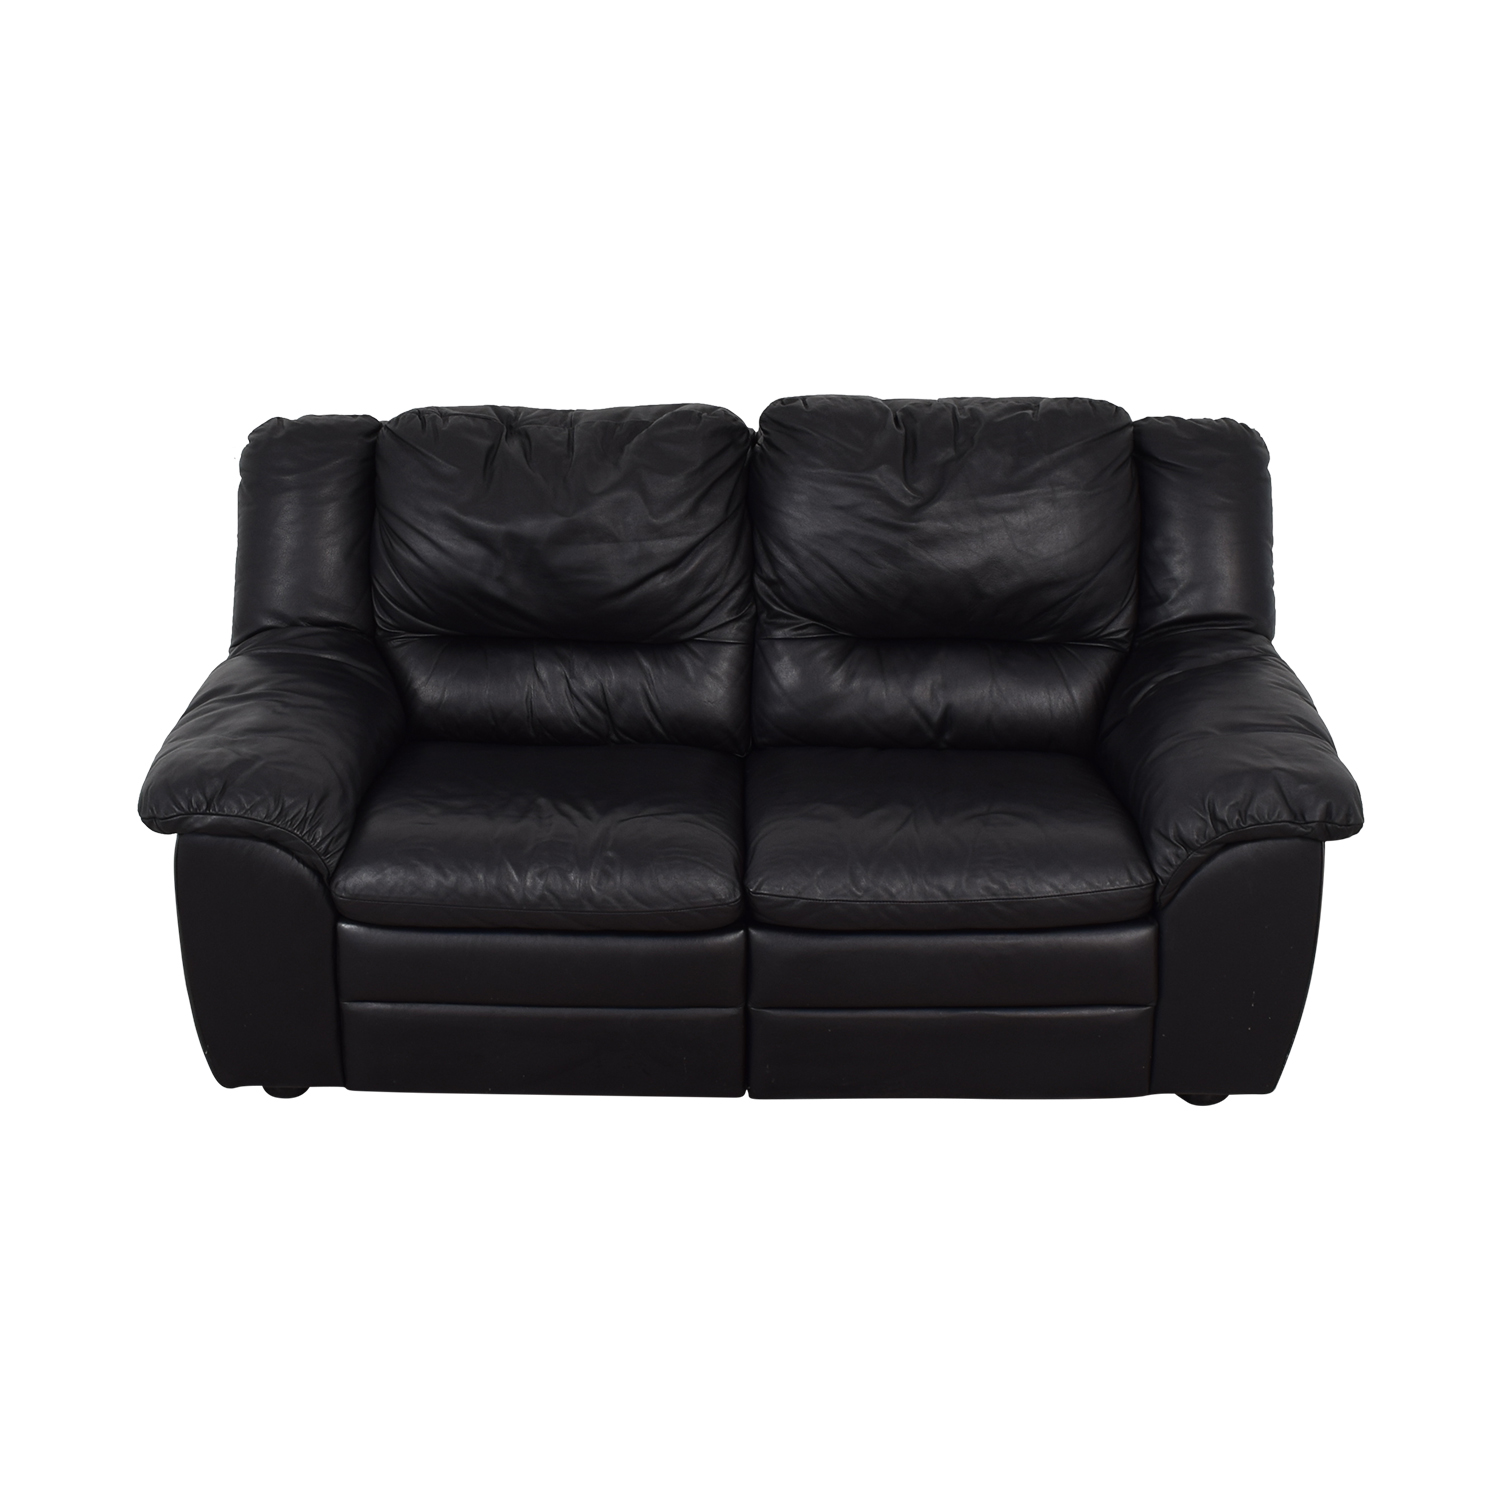 Natuzzi Black Leather Two-Cushion Recliner Loveseat / Sofas